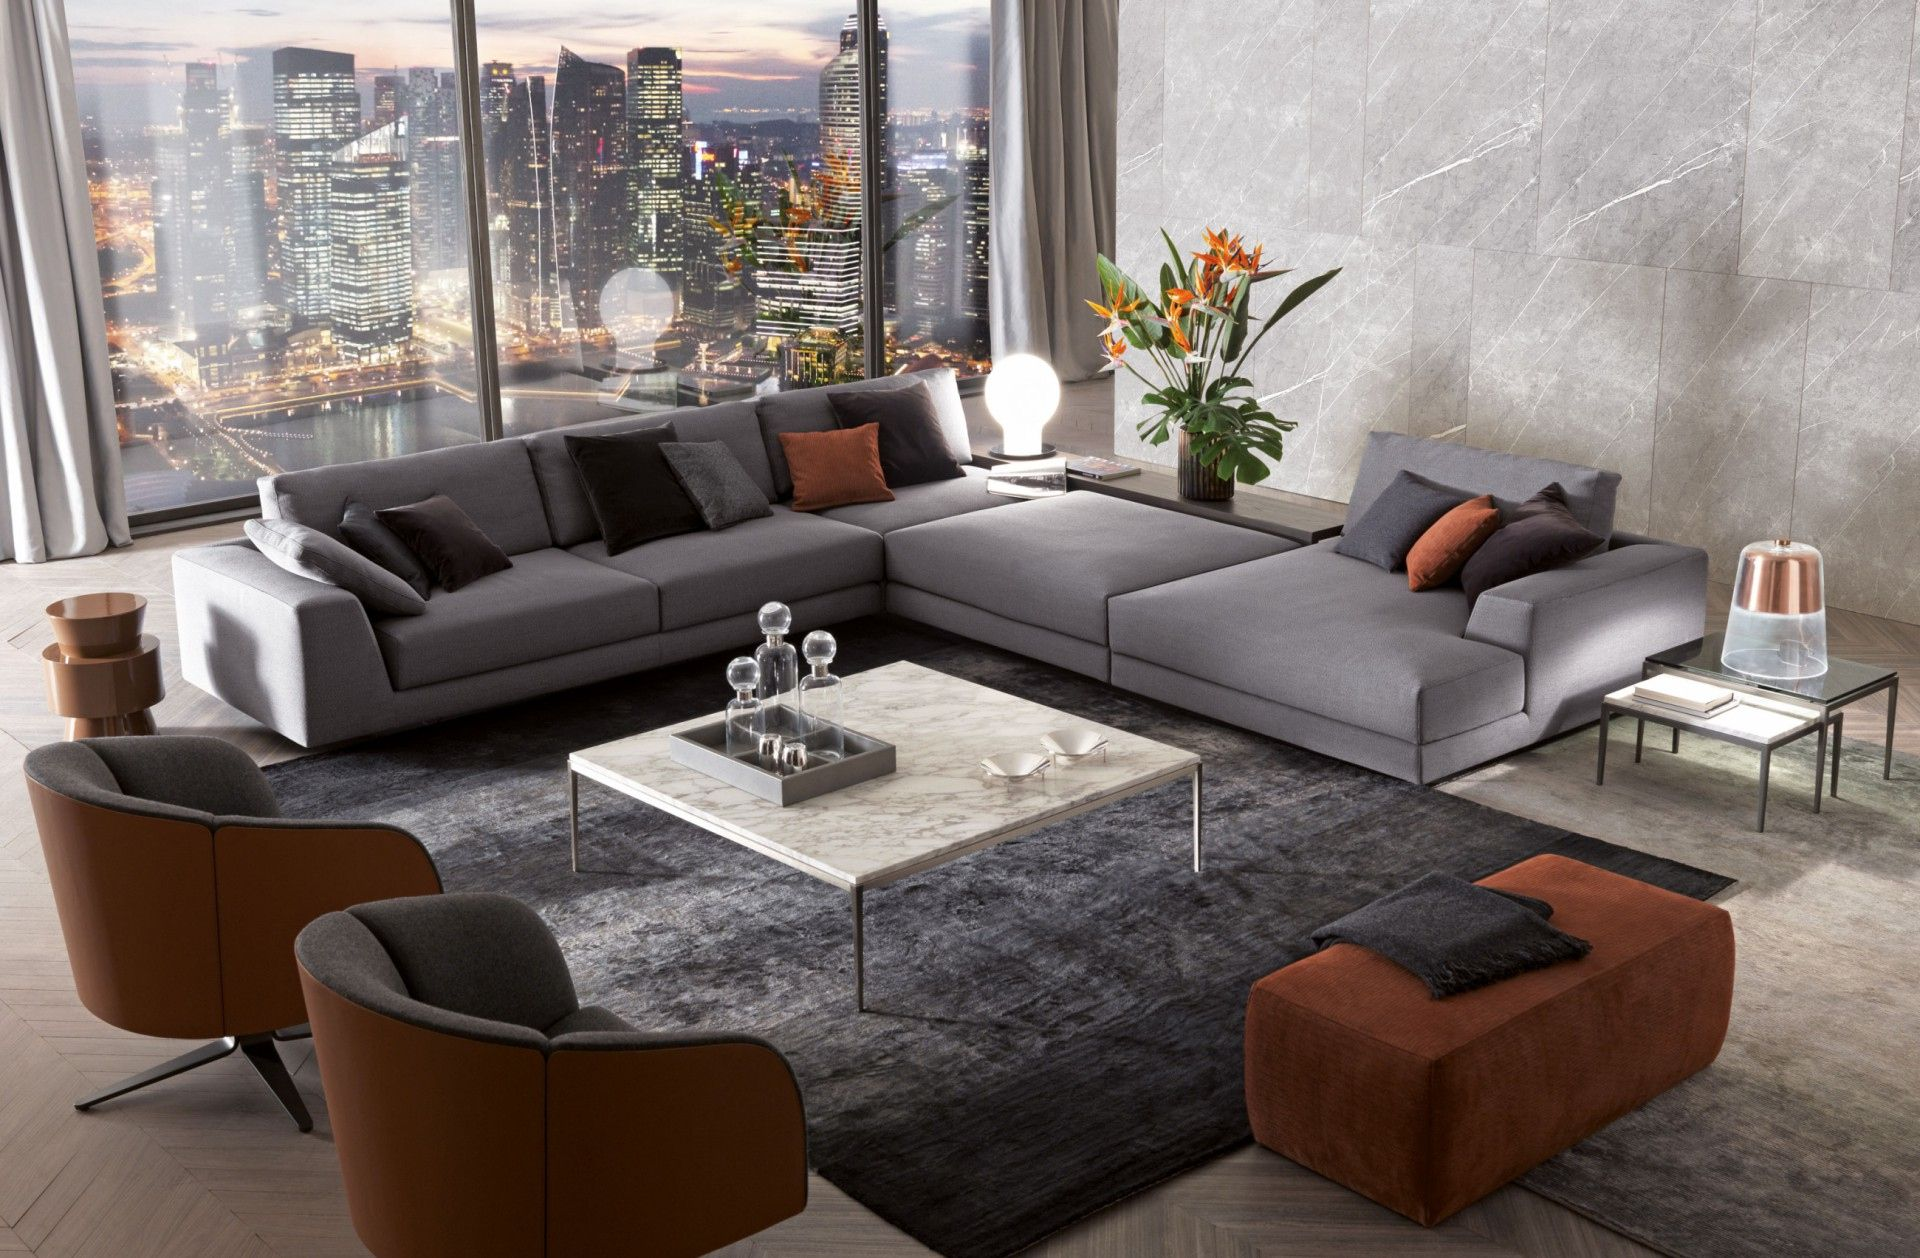 The C Shaped Argo Sofa Fills The Space With Its Fully Customisable Set Up Thanks To A Su Contemporary Decor Living Room Living Room Sofa Set Luxury Living Room C shaped living room